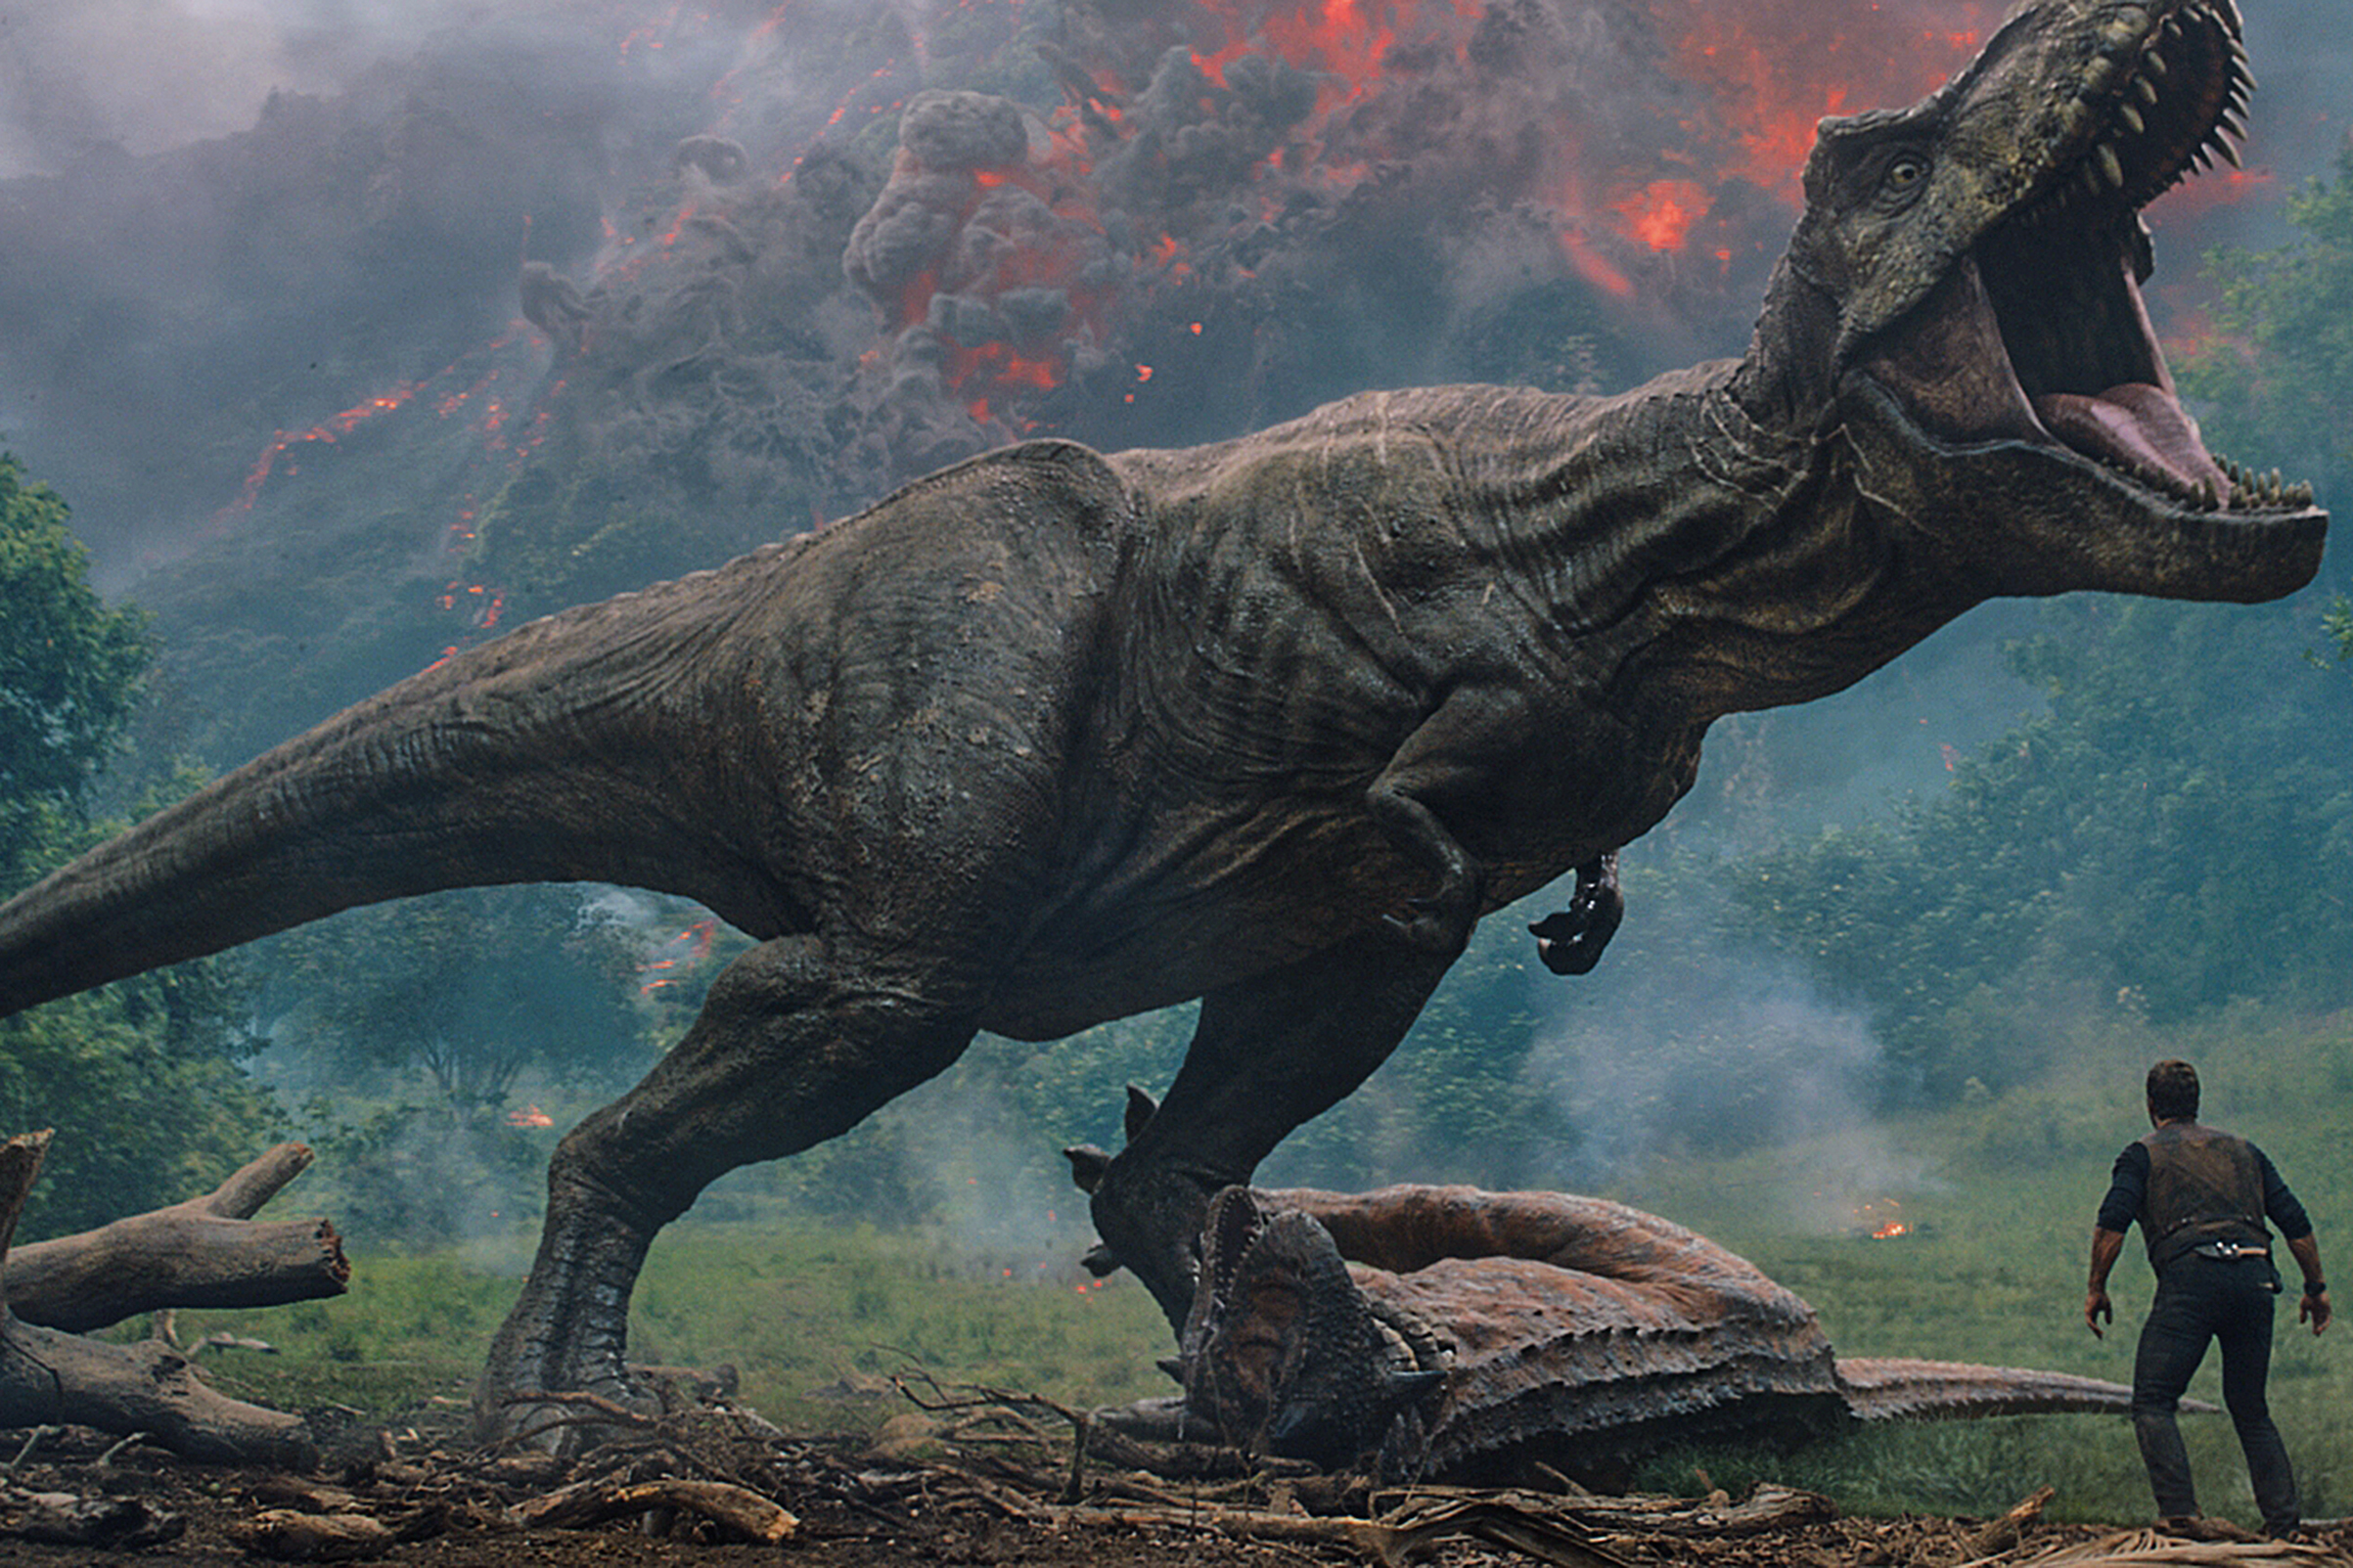 The Real Dinosaurs Behind 'Jurassic World: Fallen Kingdom' | Time